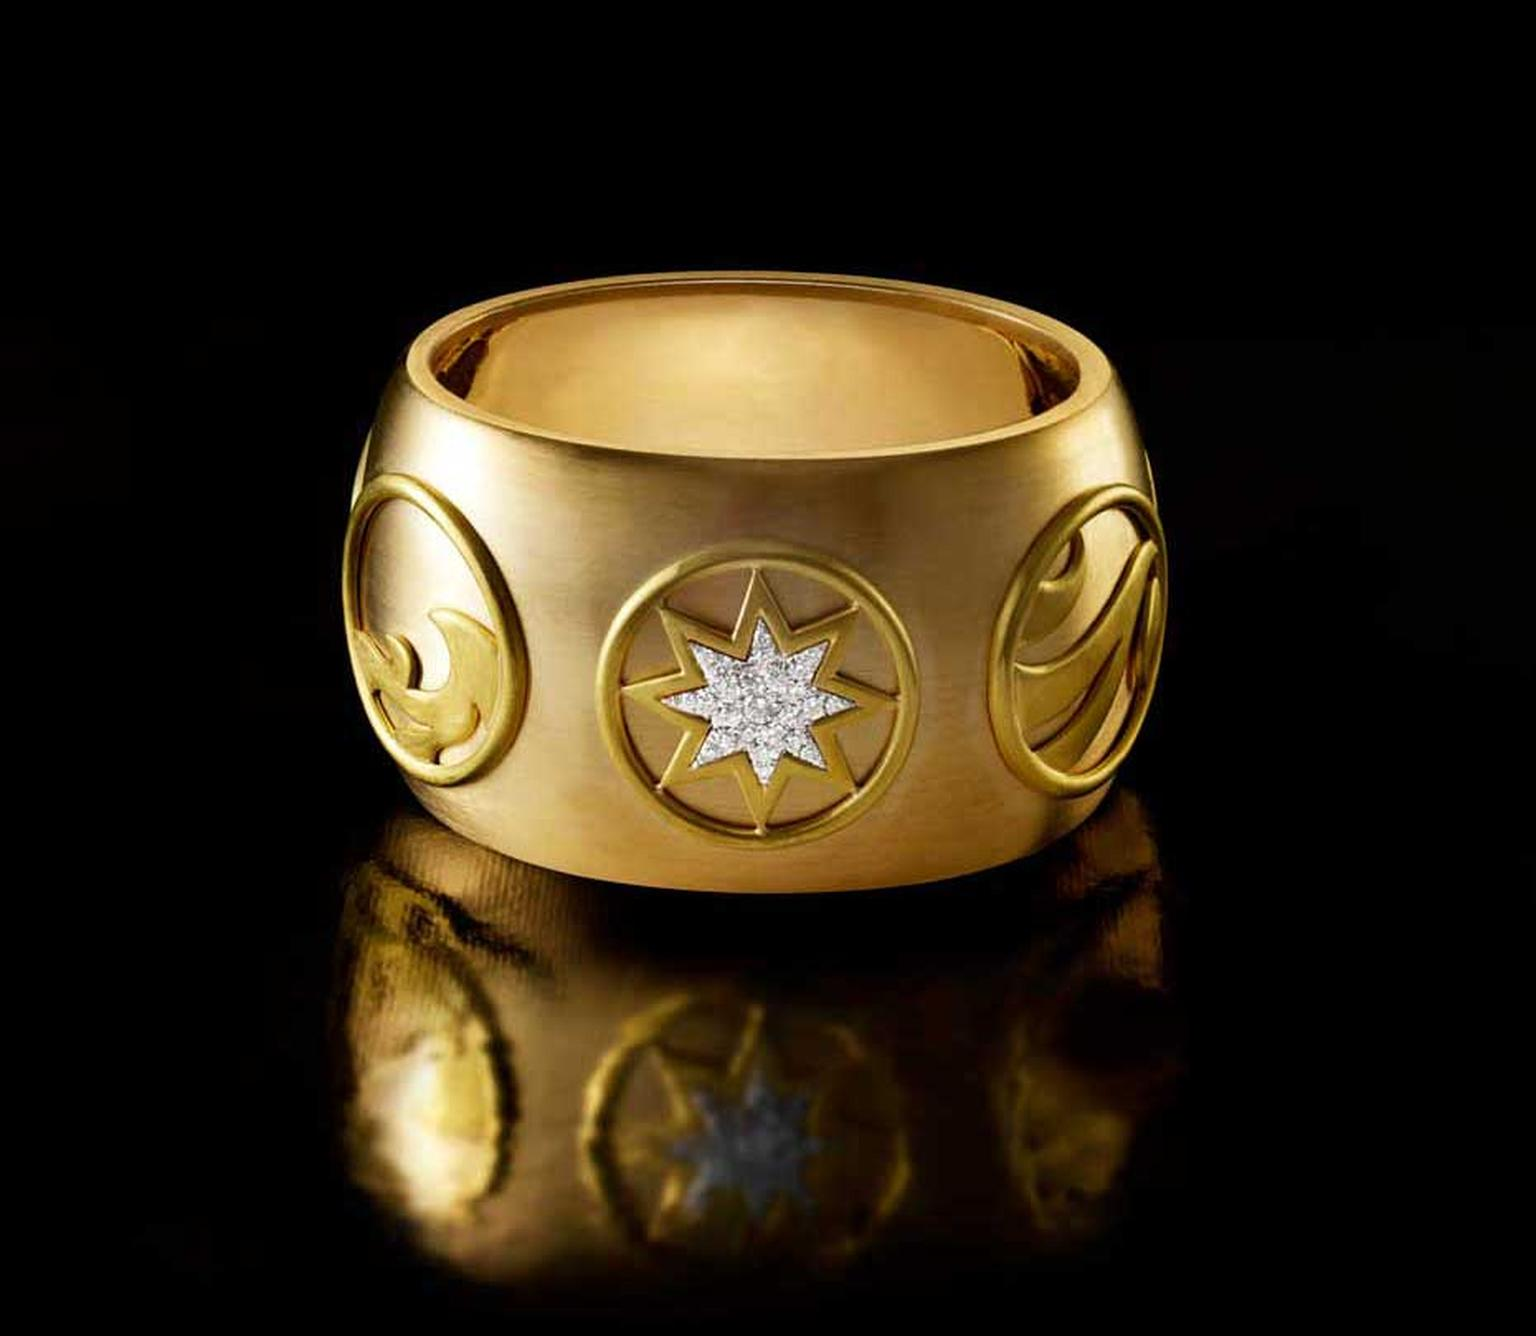 Liv Ballard Cosmos gold cuff with pavé diamonds.